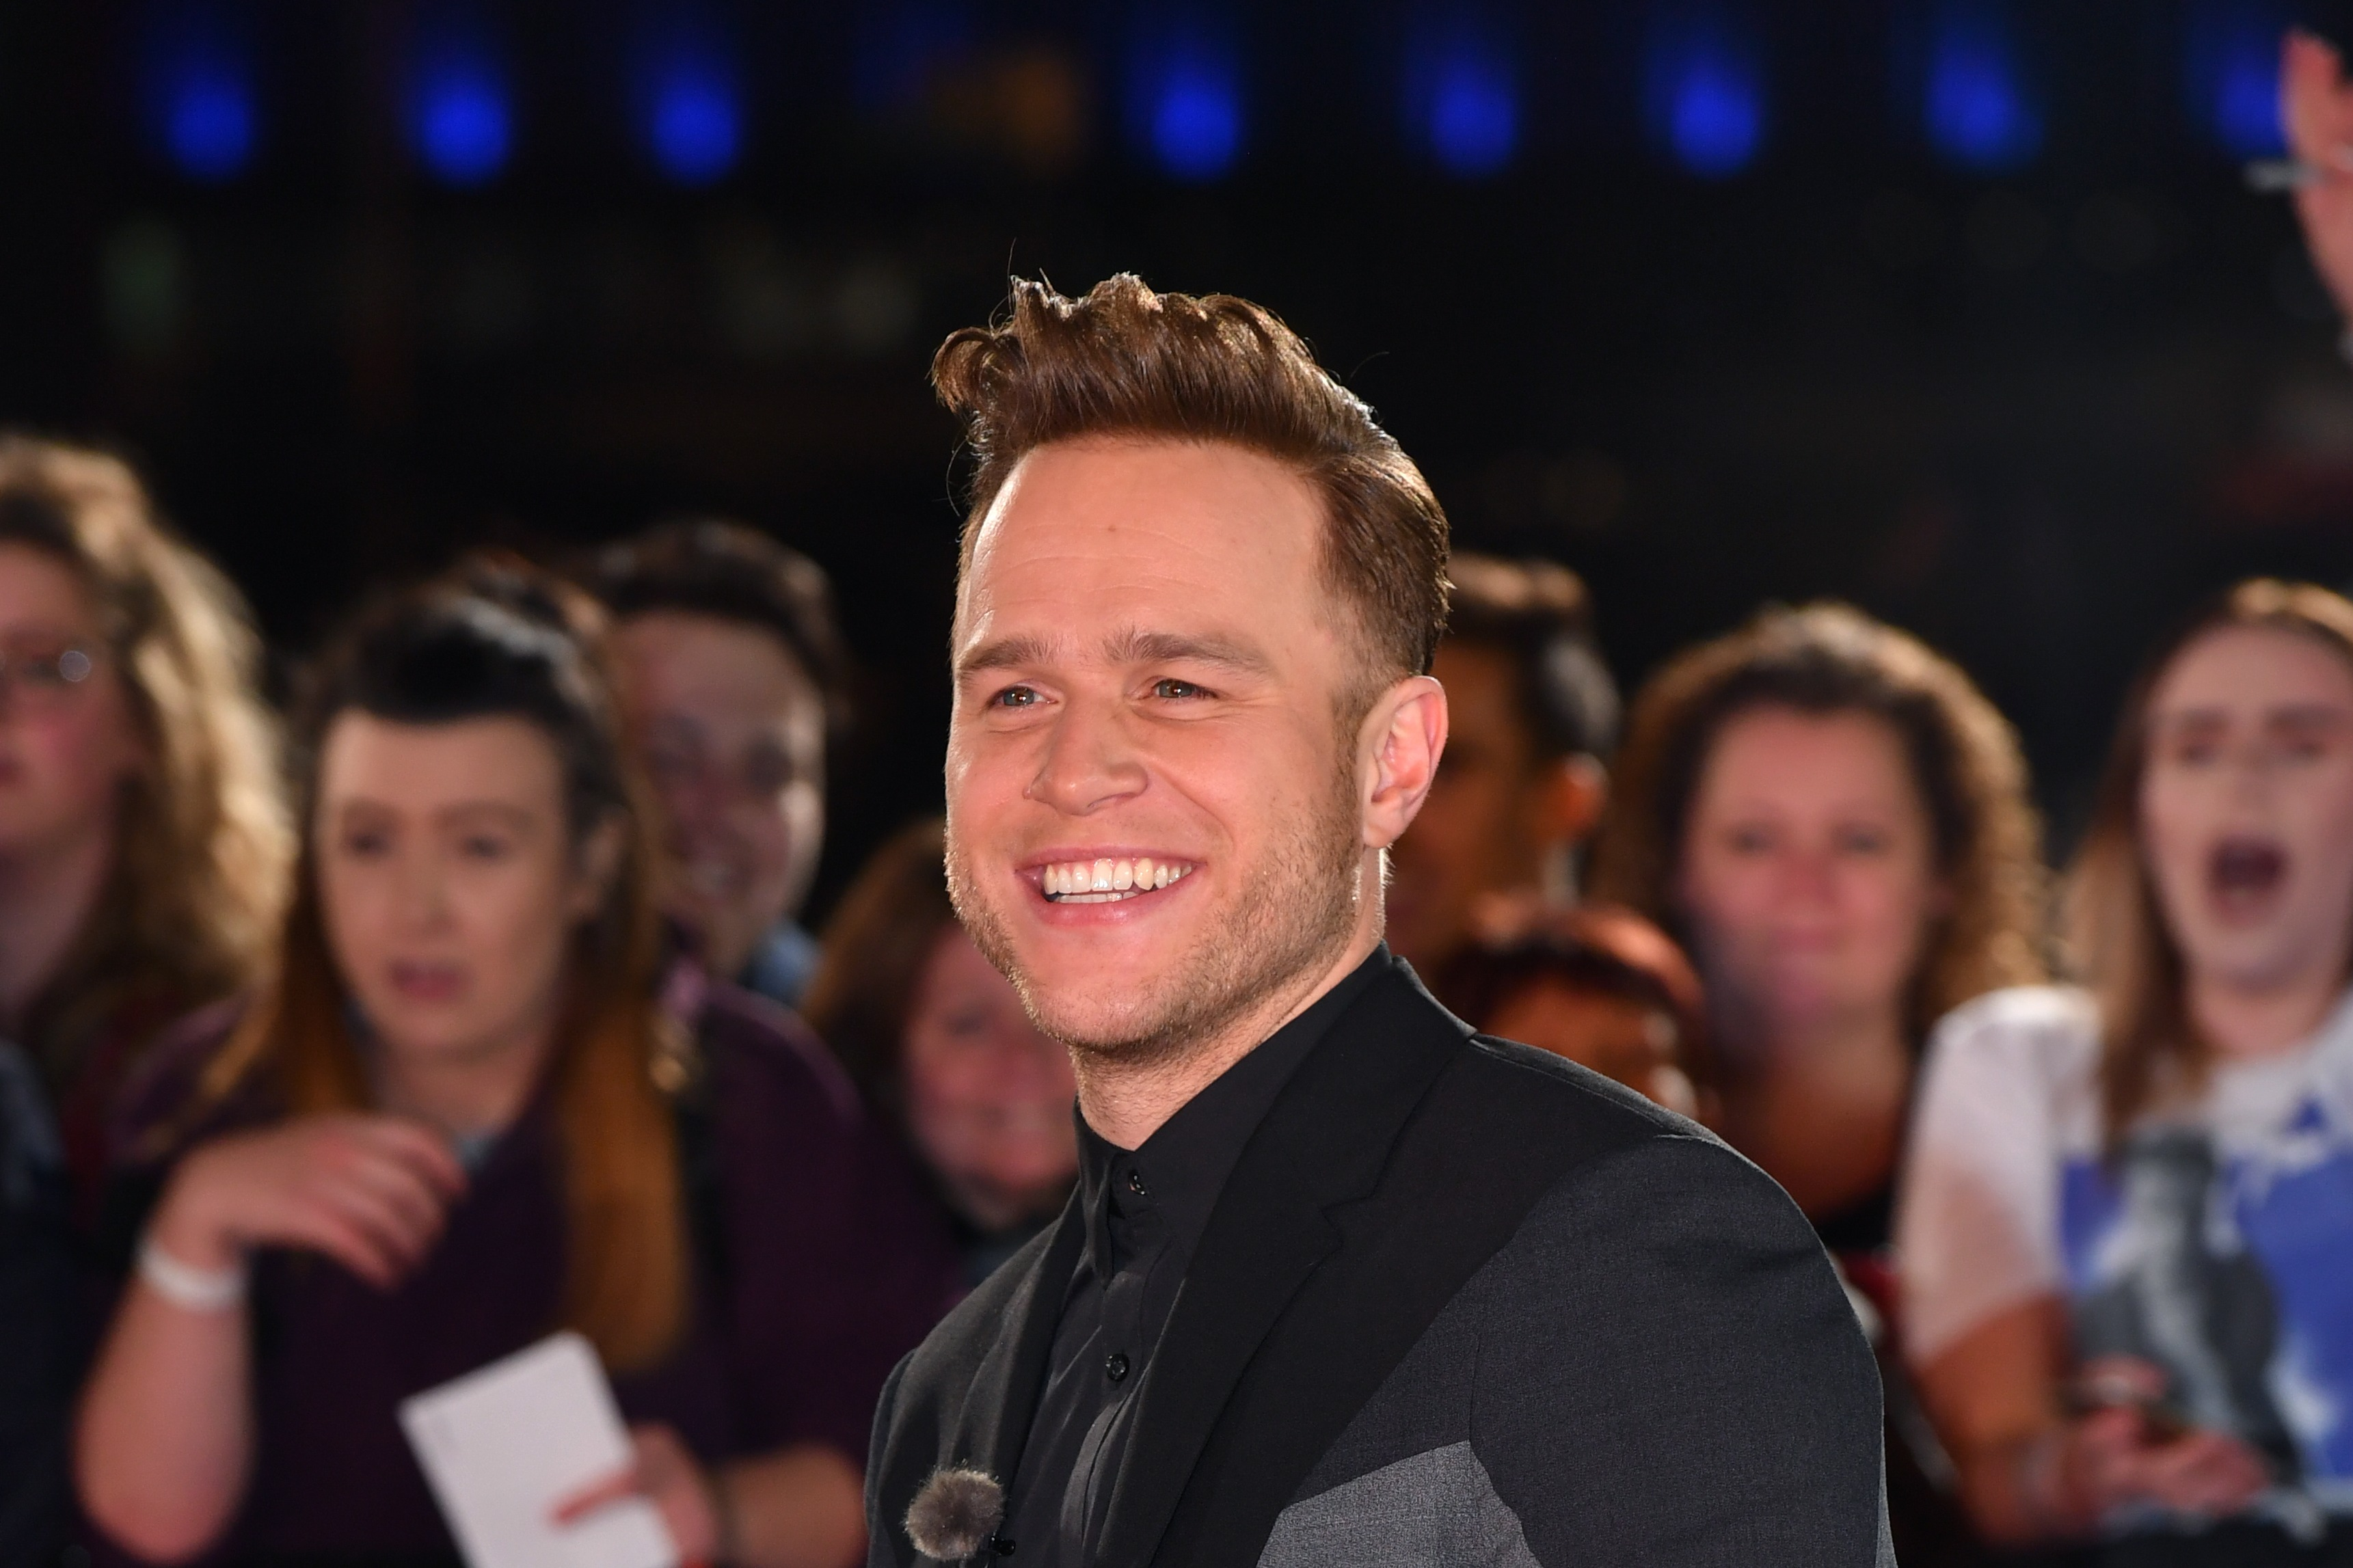 MANCHESTER, ENGLAND - OCTOBER 17:  Olly Murs arrives during The Voice UK 2018 launch photocall at Media City on October 17, 2017 in Manchester, England.  (Photo by Anthony Devlin/Getty Images)